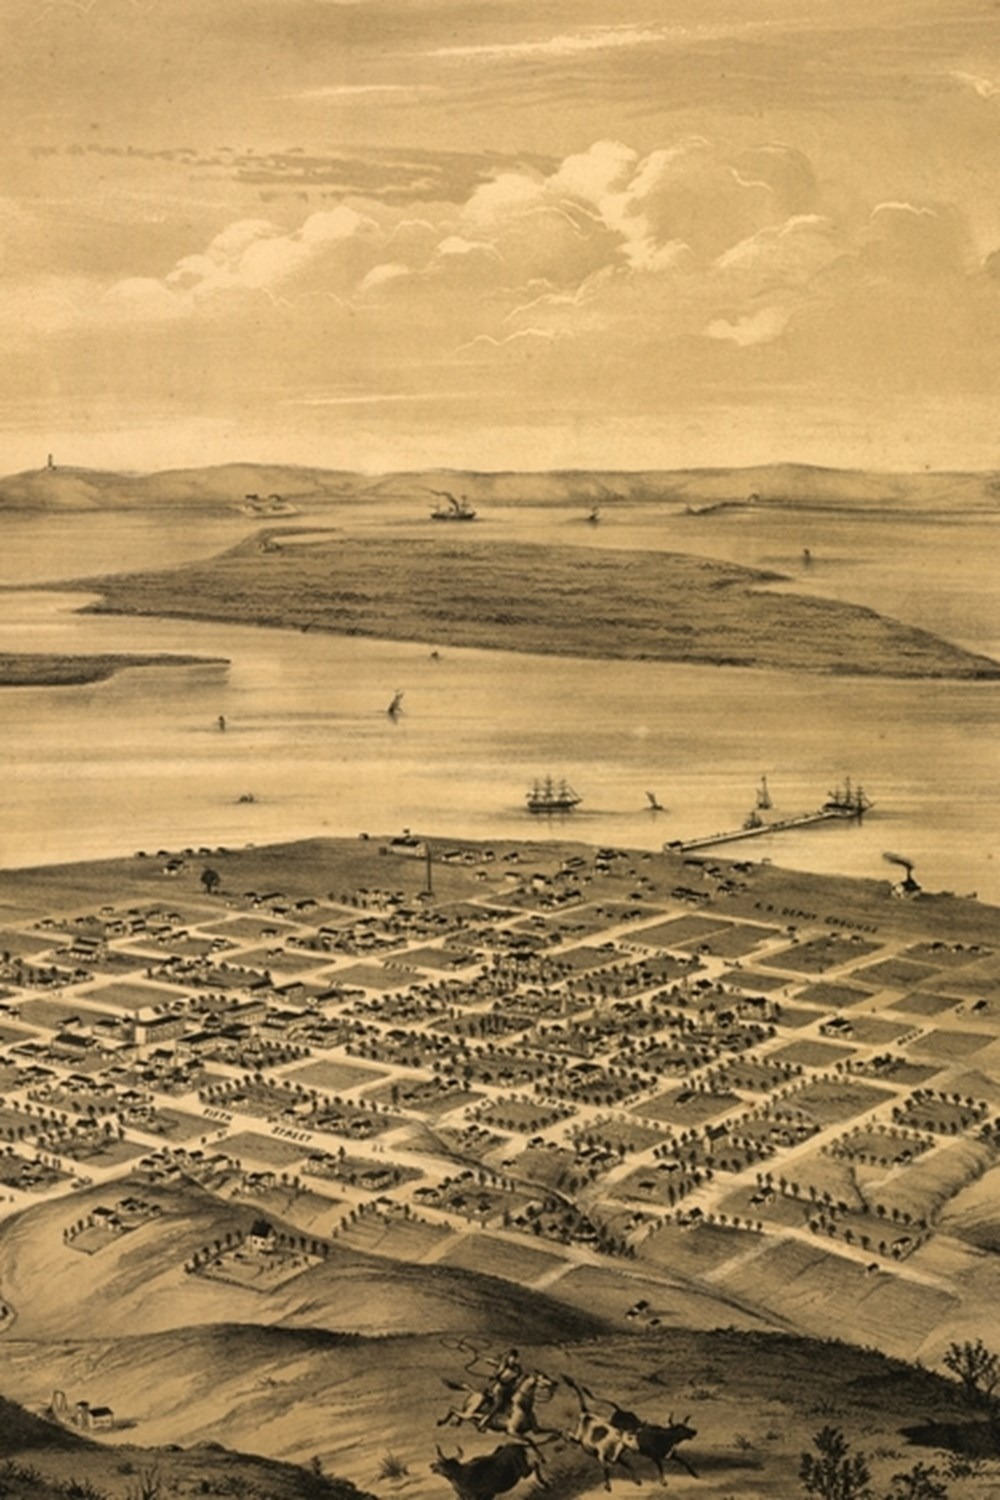 19th Century Bird's Eye View Map of San Diego, California - A Poetose Notebook / Journal / Diary (50